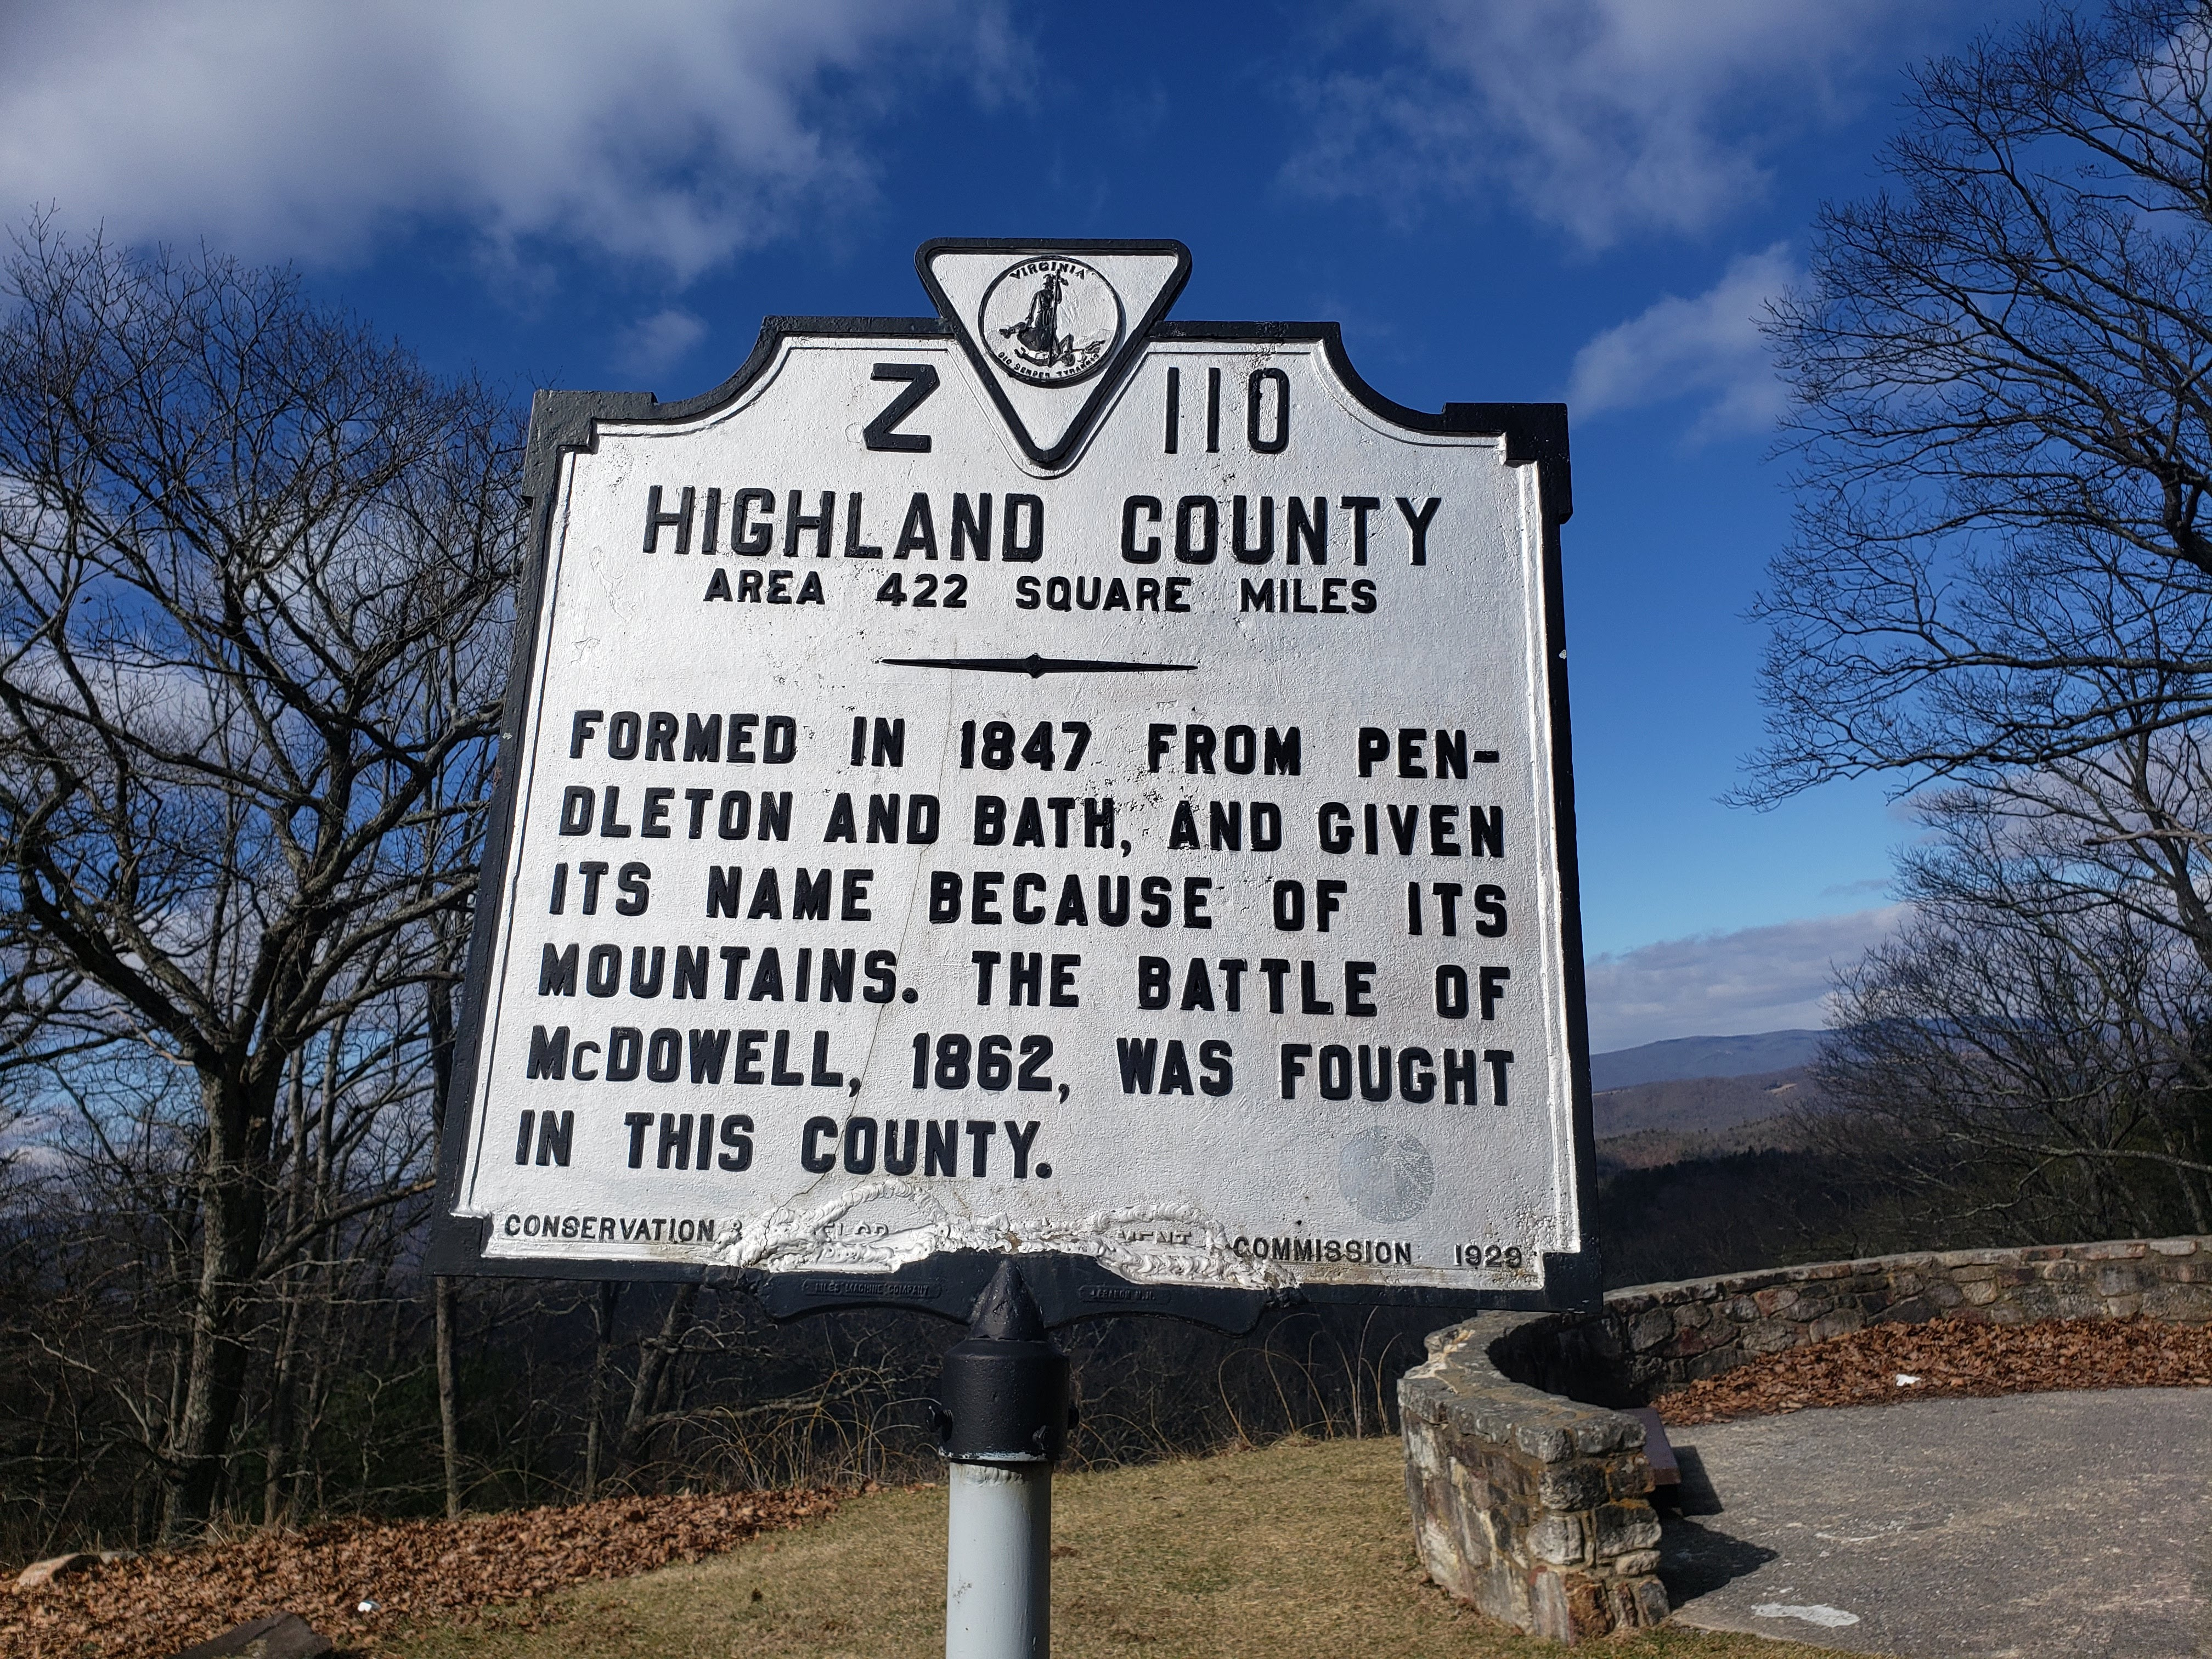 Sign upon entering Highland County